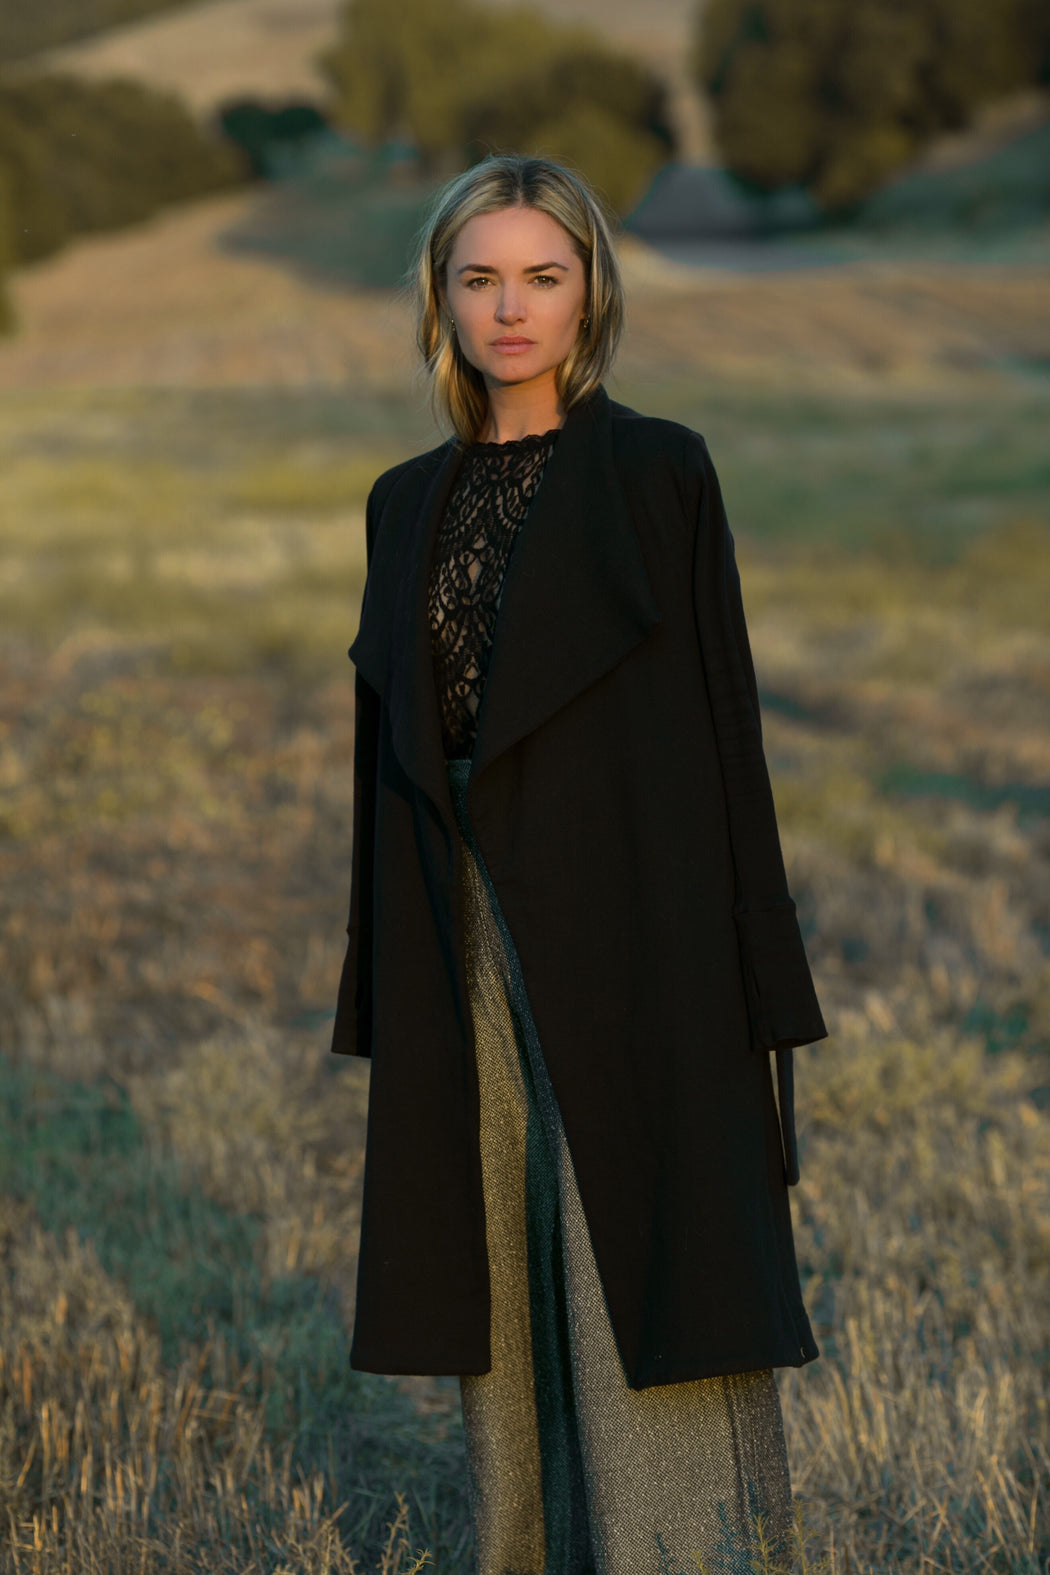 THE BLACK WRAP COAT